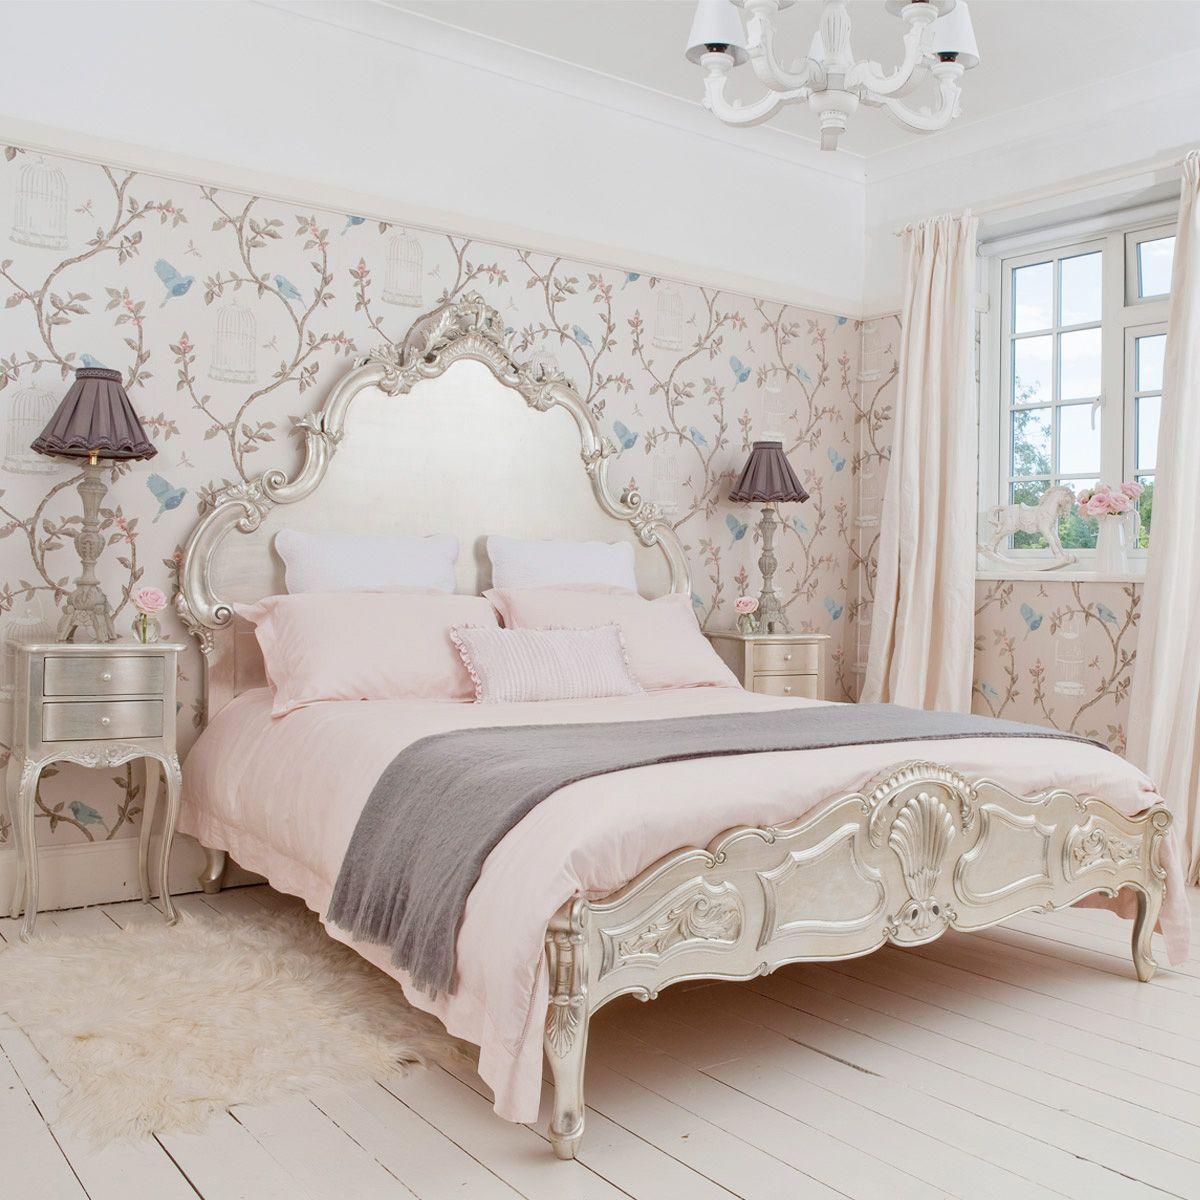 Sylvia Silver Luxury Bed (King) | Pink bed linen, Pink bed and Bed ...